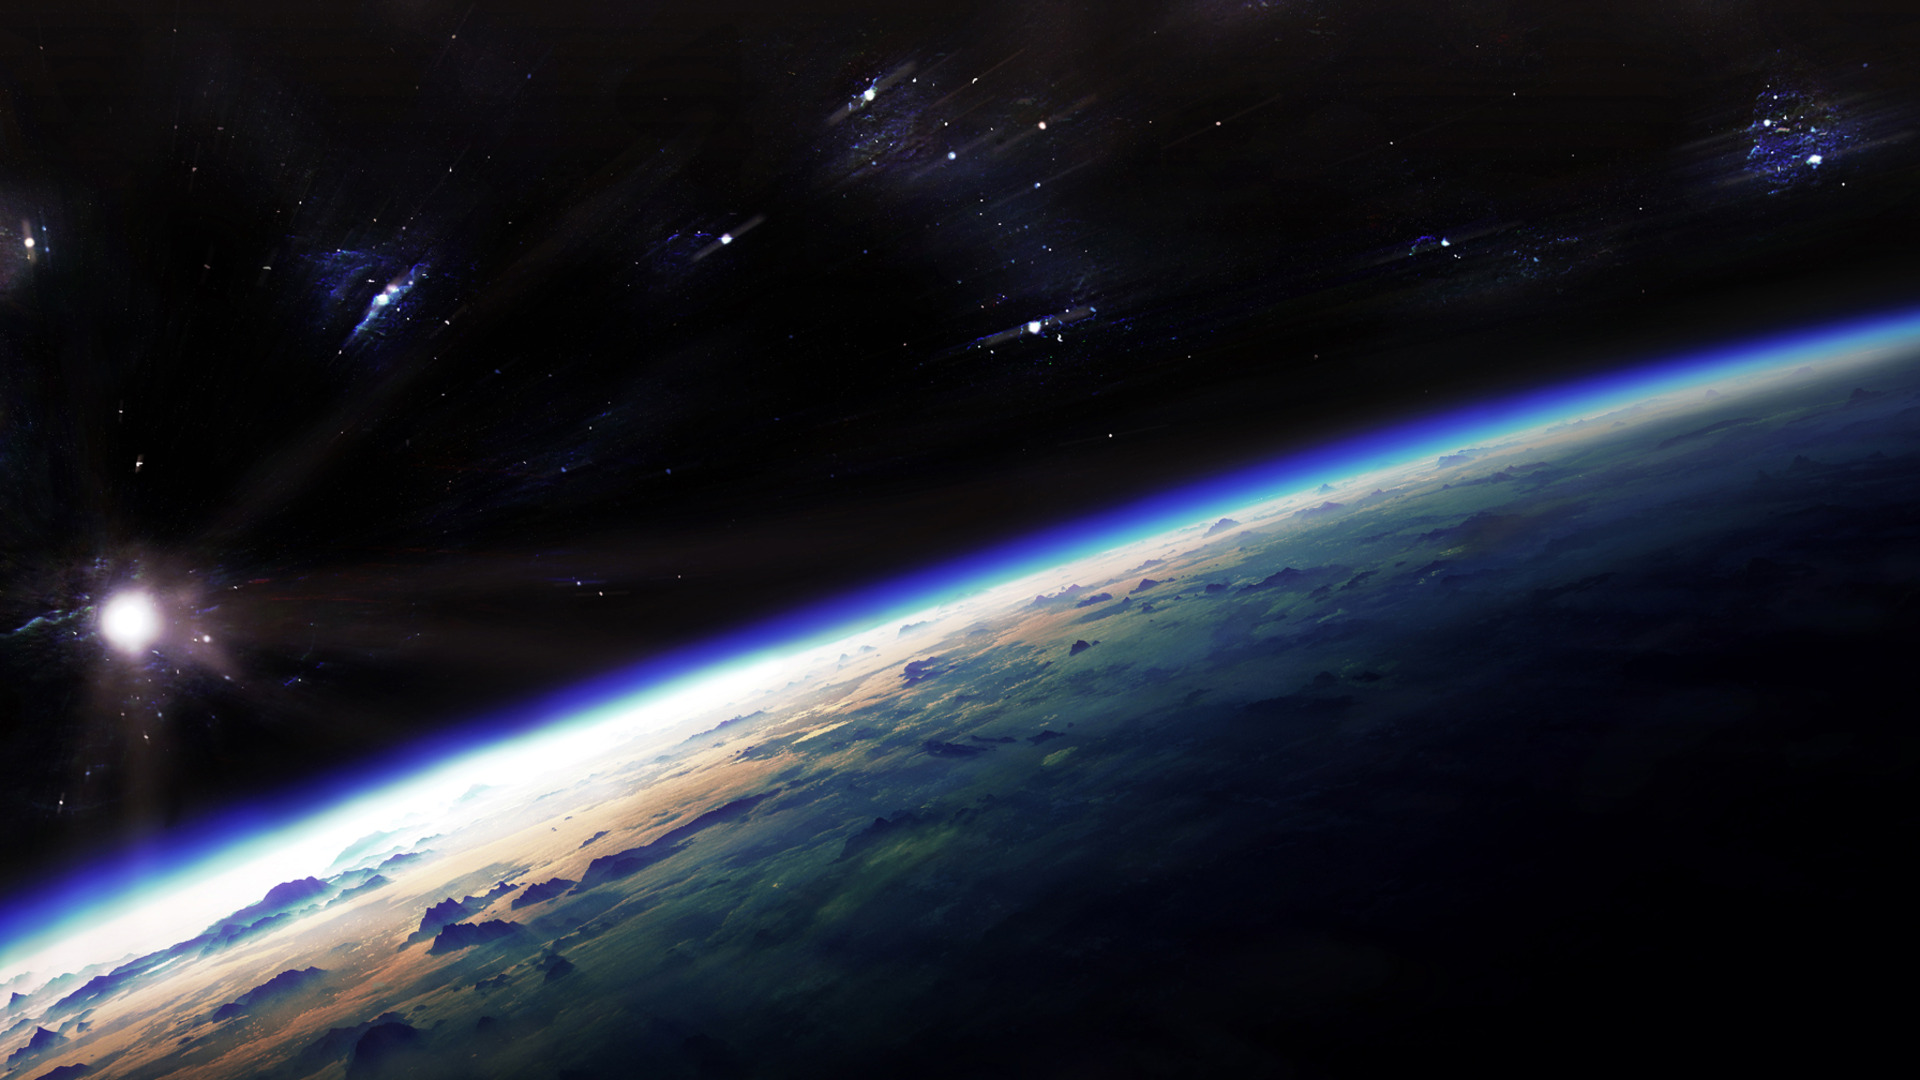 Earth From Space Wallpaper 1920x1080 Earth From Space 1920x1080